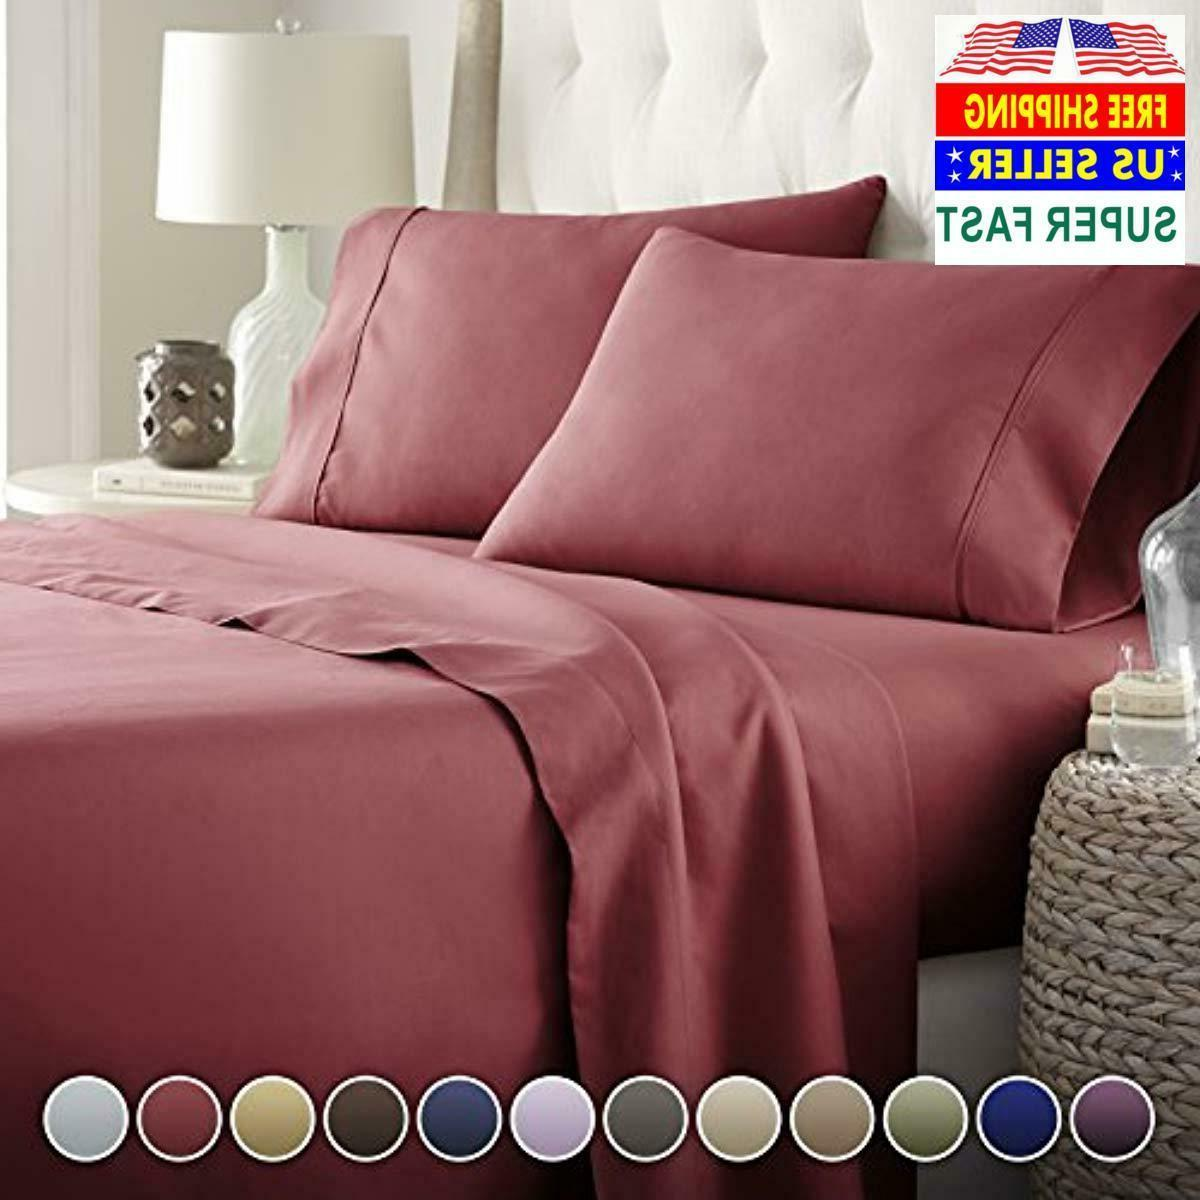 hotel luxury bed sheets set today on